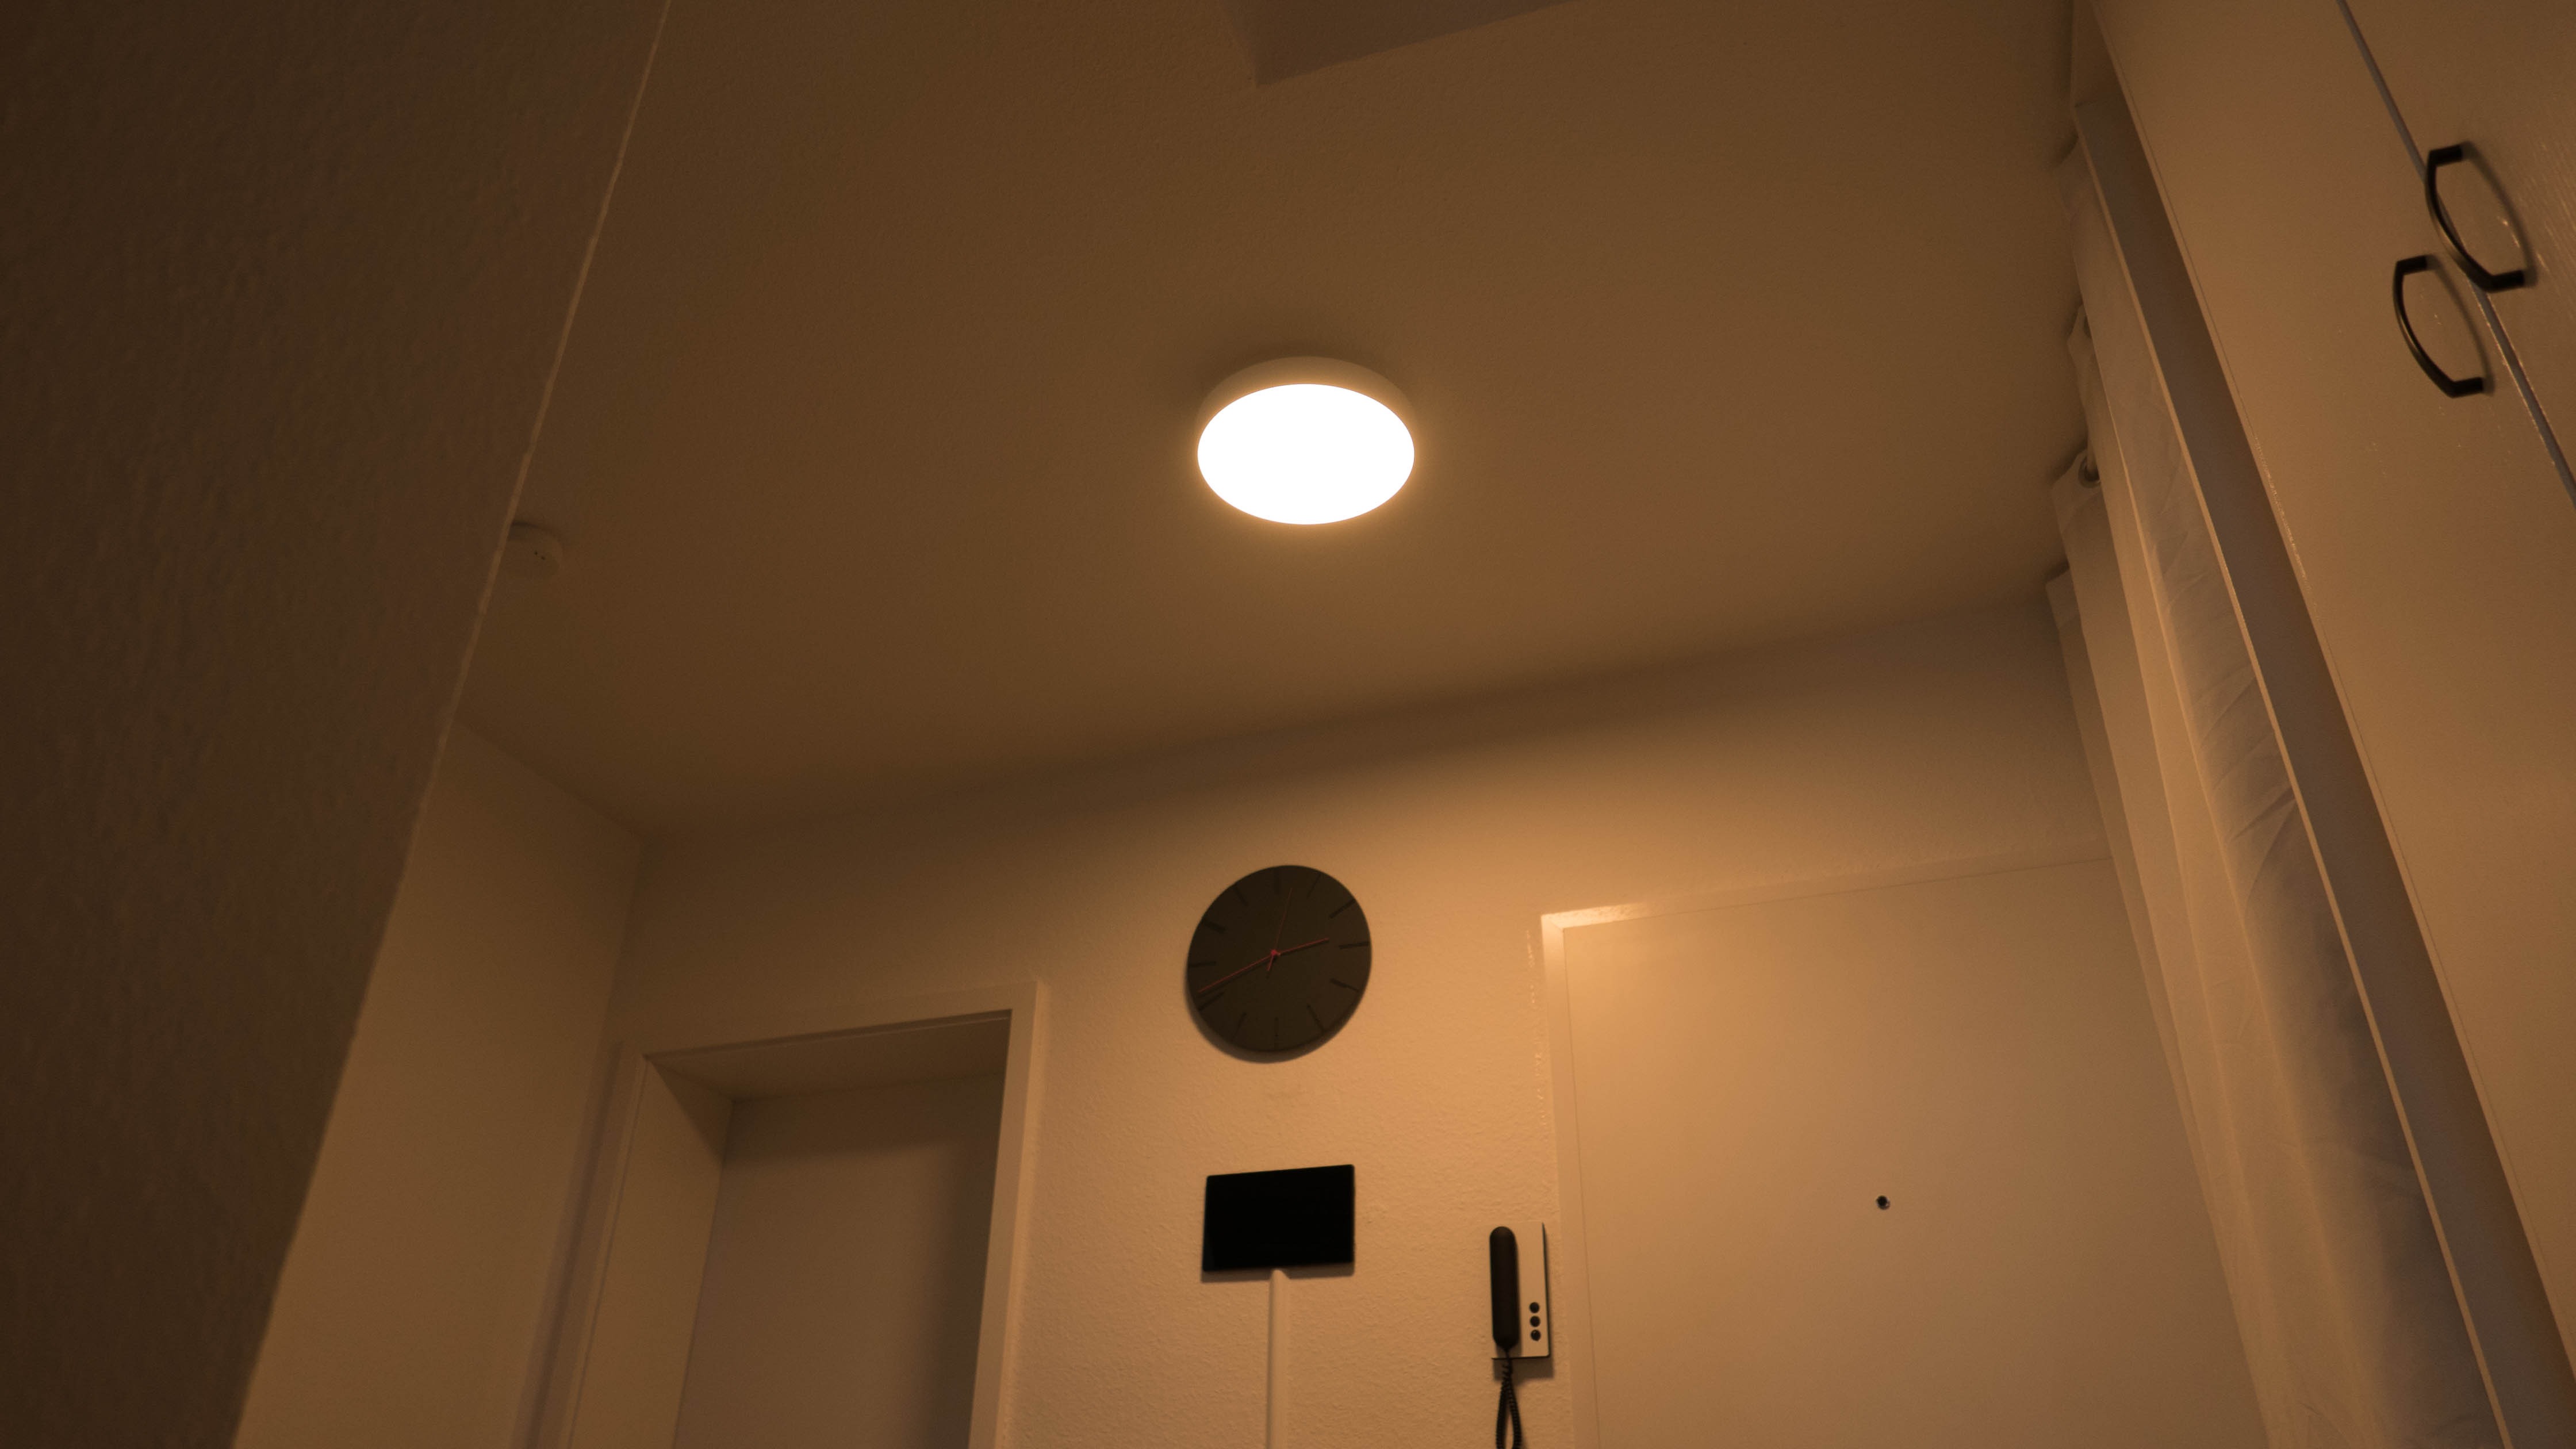 Xiaomi Yeelight LED Ceiling Light Farbtemperatur 1